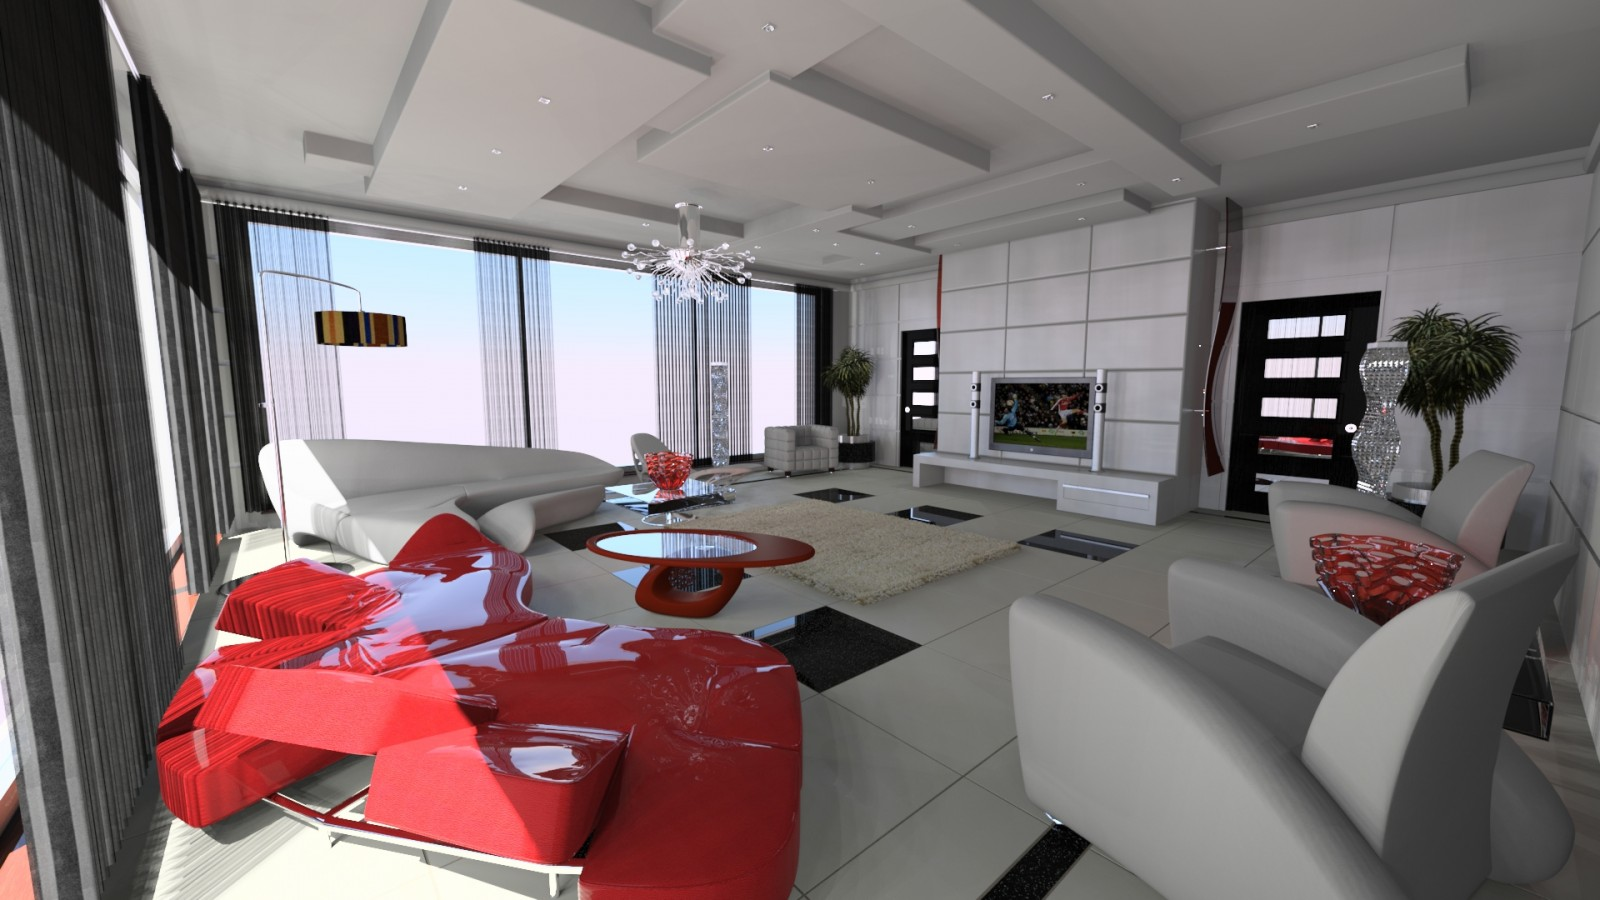 Lounge-designed-by-Mike-Makki-nXtRender-for-AutoCAD-1600x900